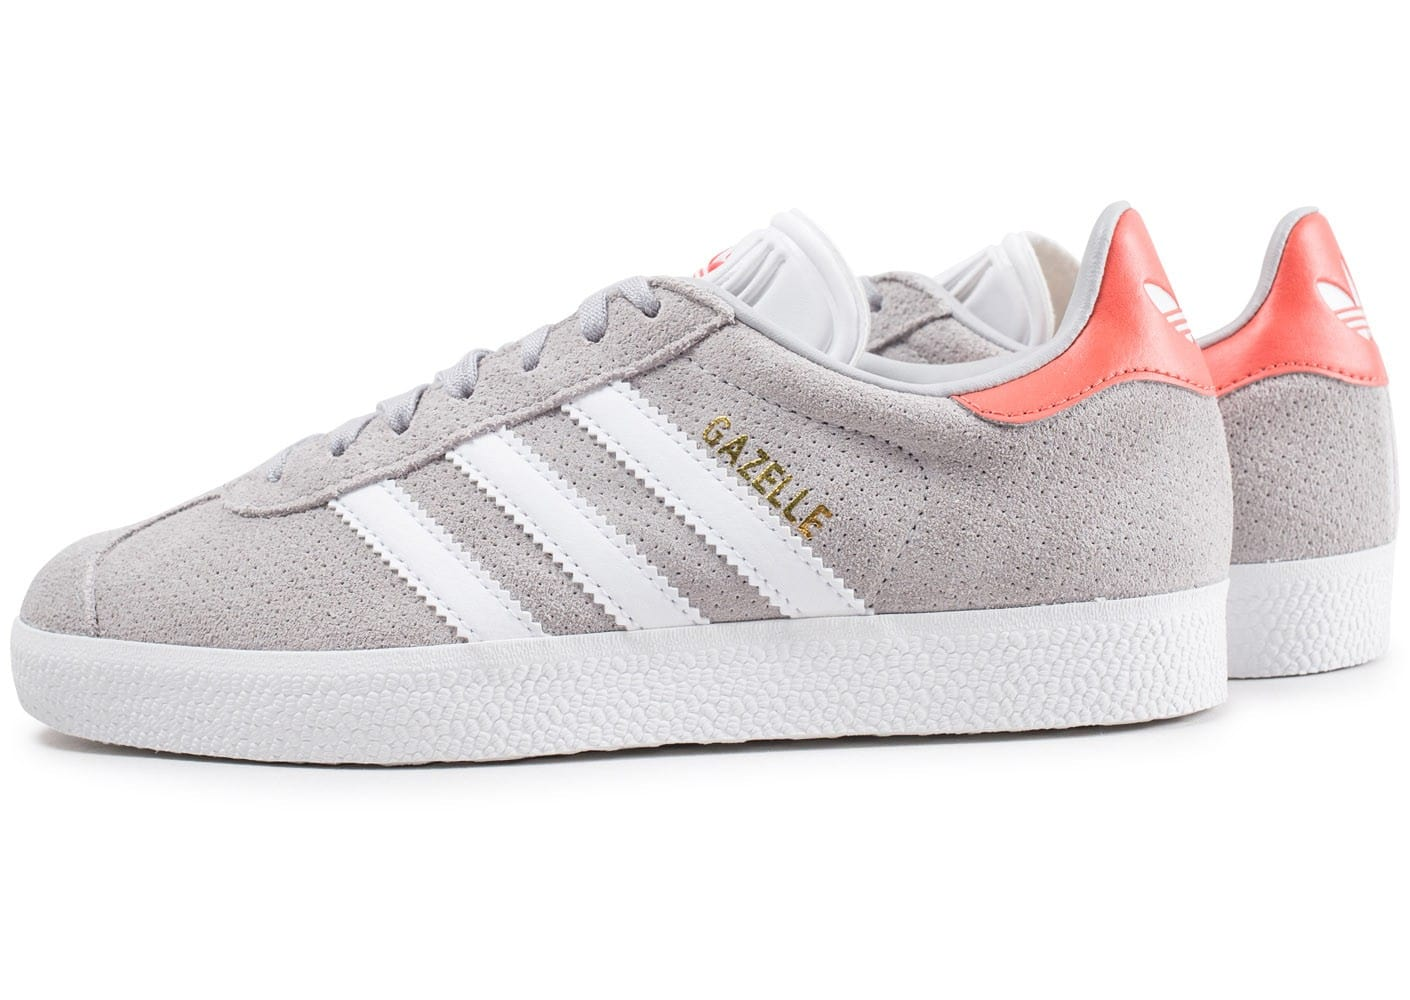 factory price best value watch adidas gazelle femme chausport une vente de liquidation de ...